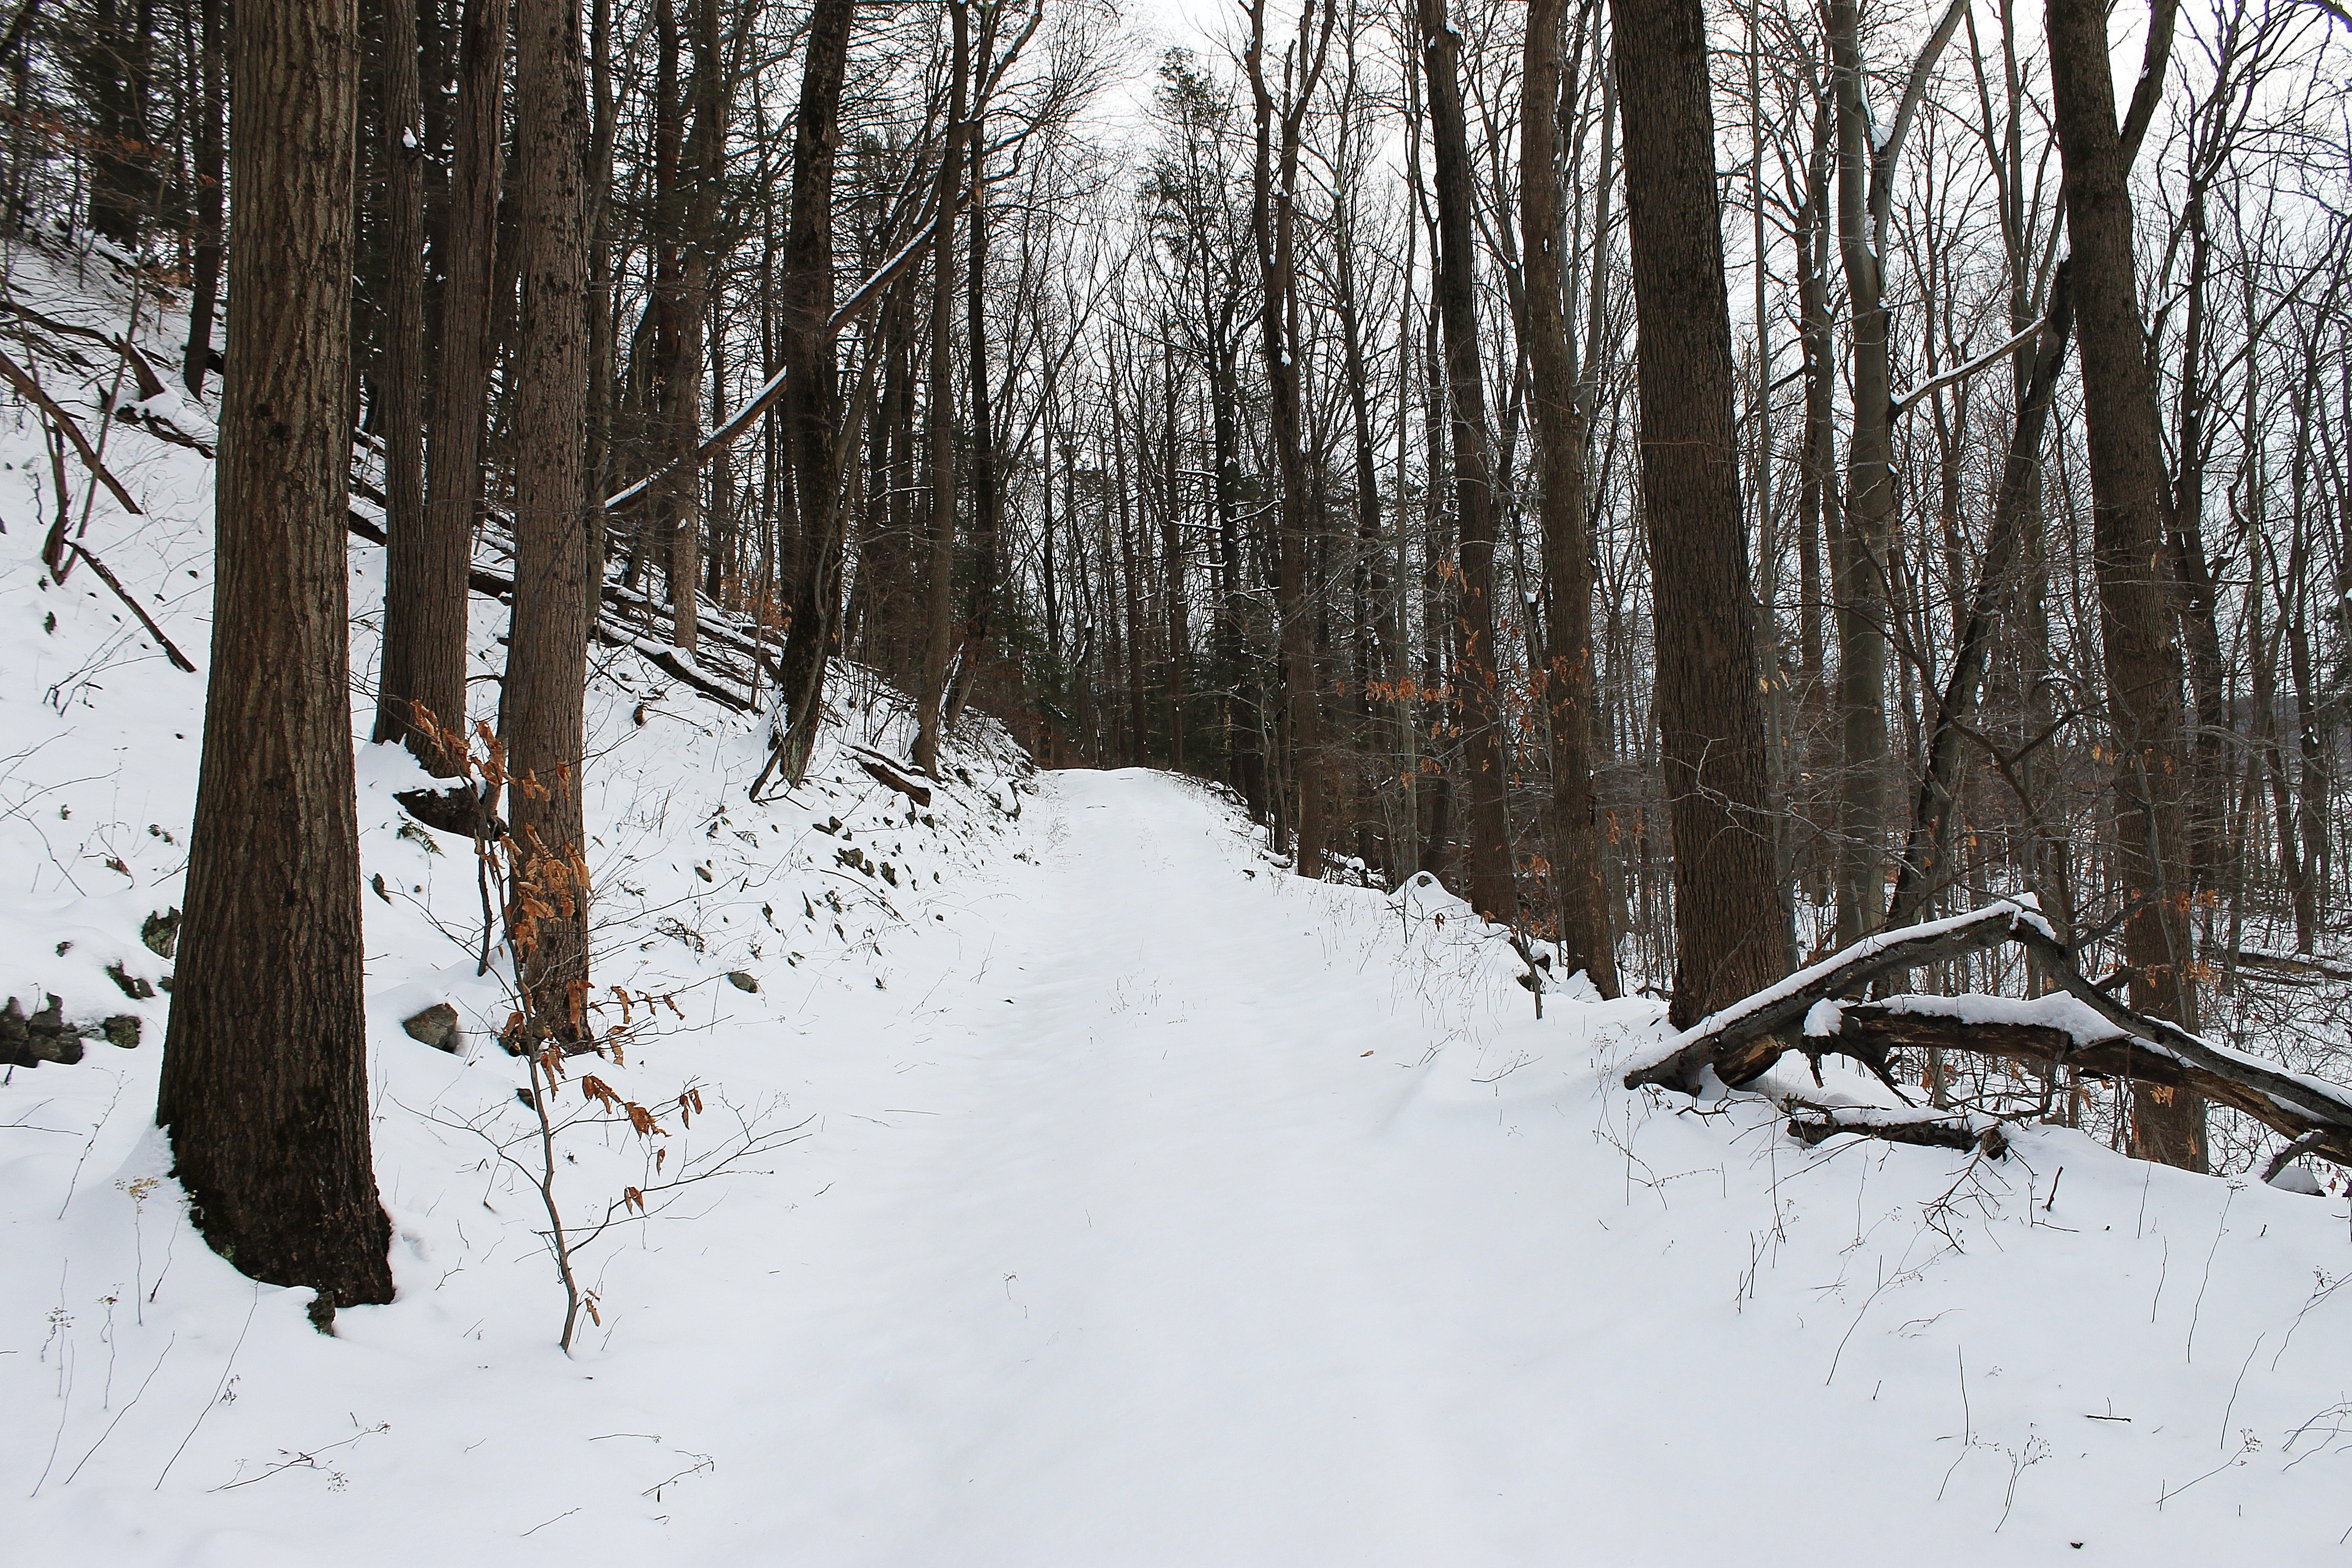 snowy forest trails   Scott's Place...Images and Words